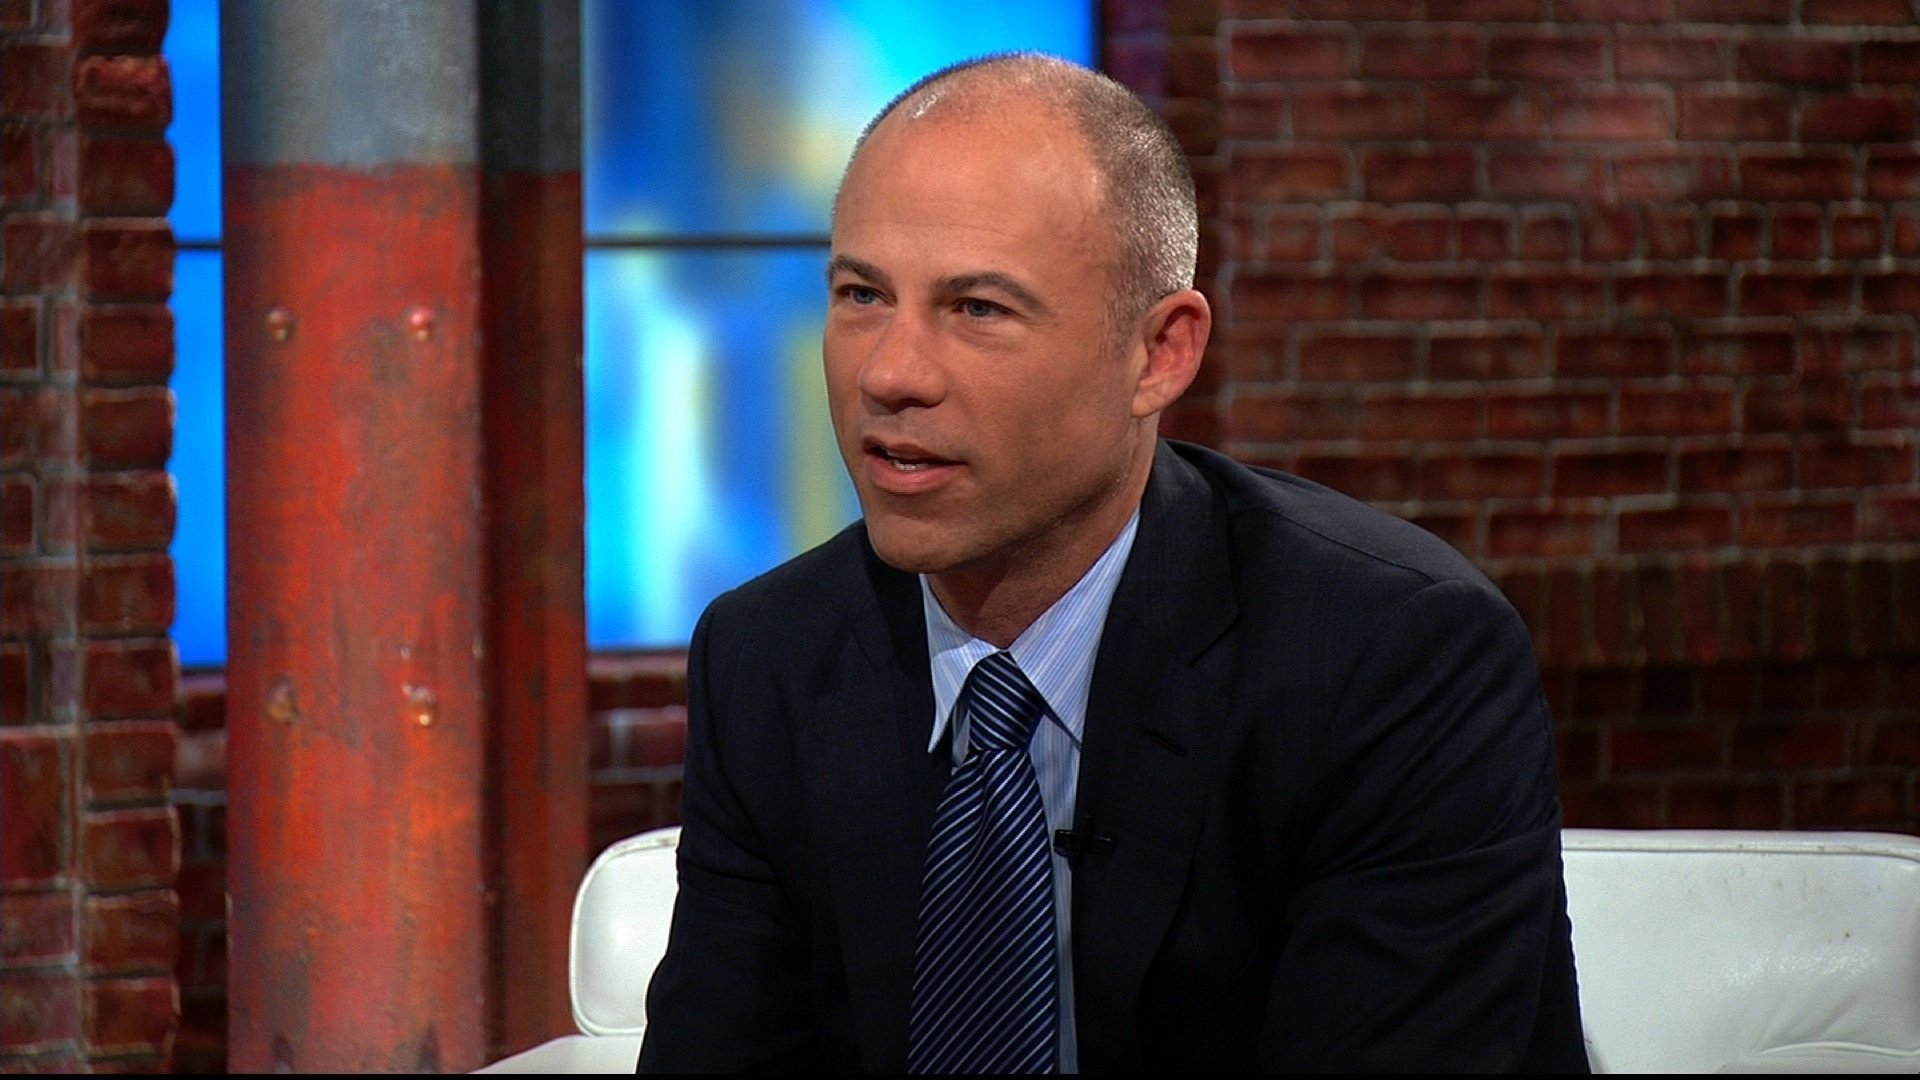 Michael Avenatti the lawyer for adult film actress Stormy Daniels is seen here speaking to CNN